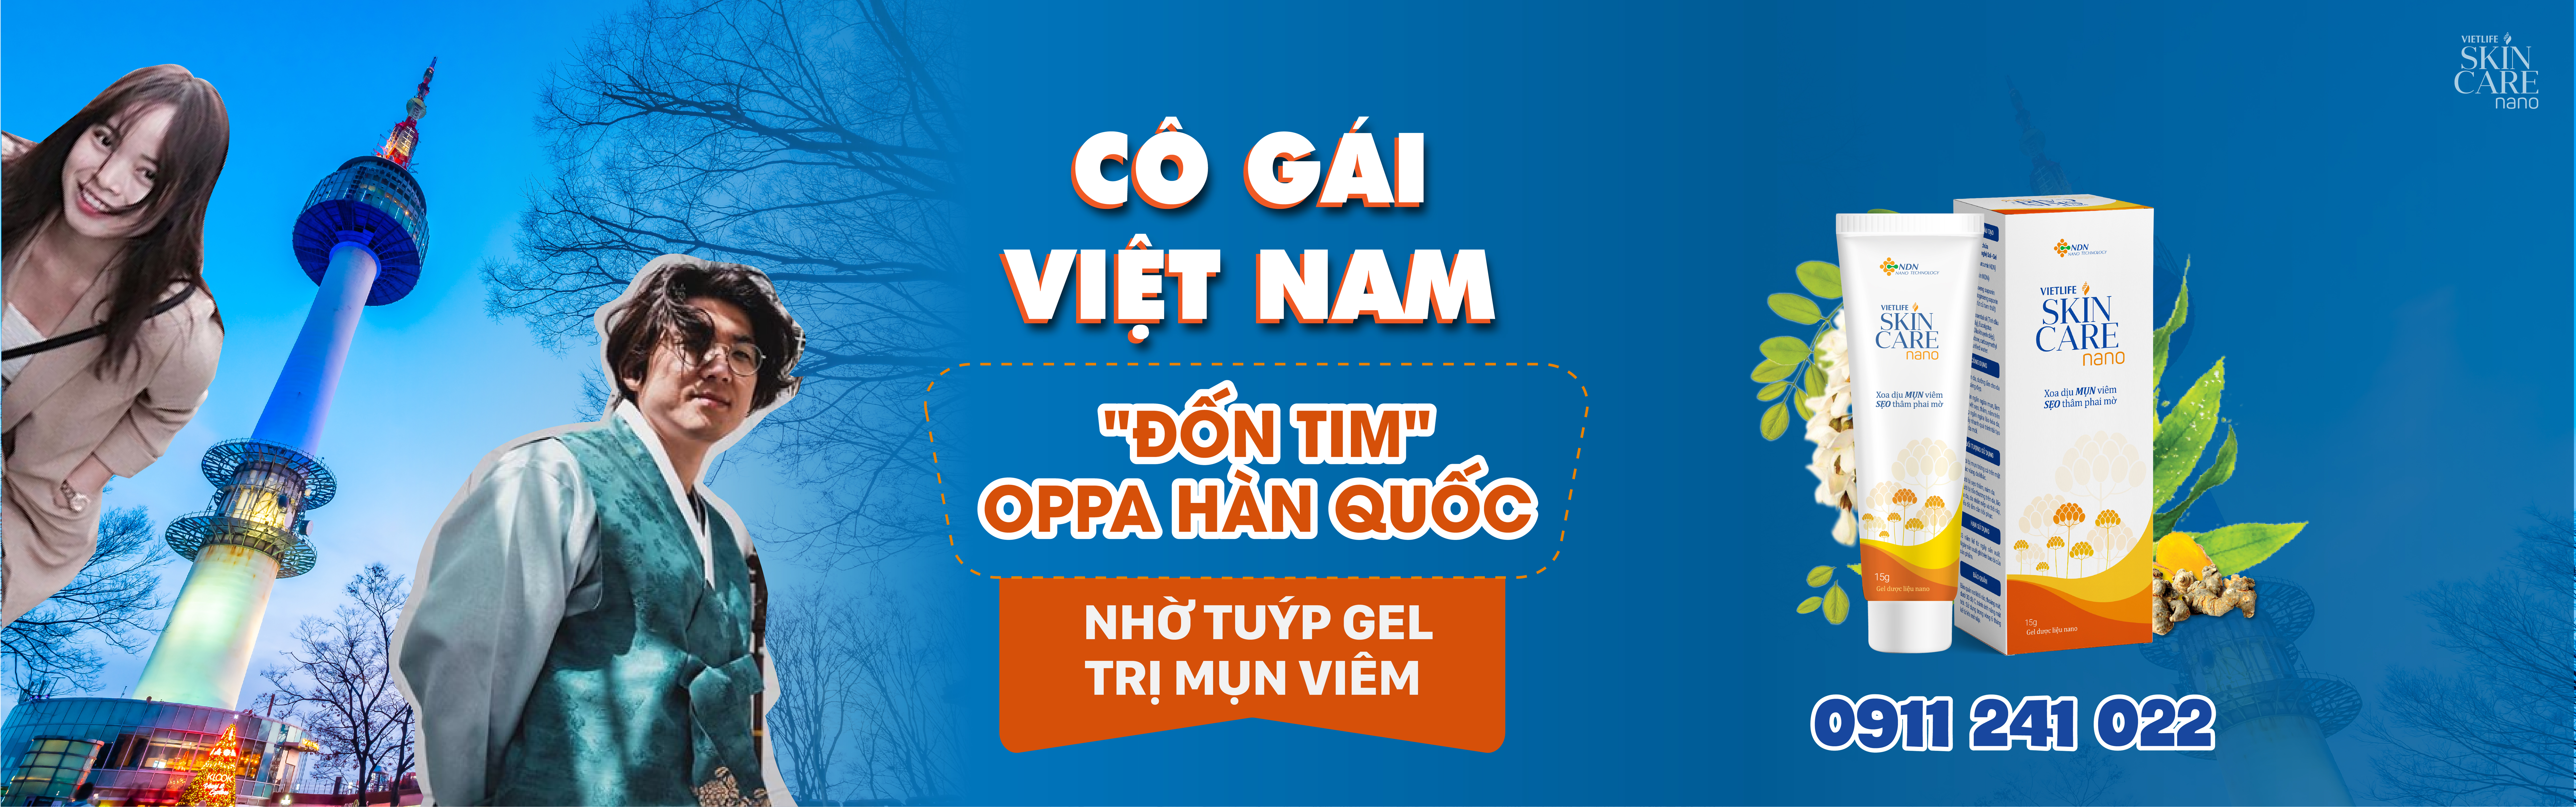 website-han-quoc